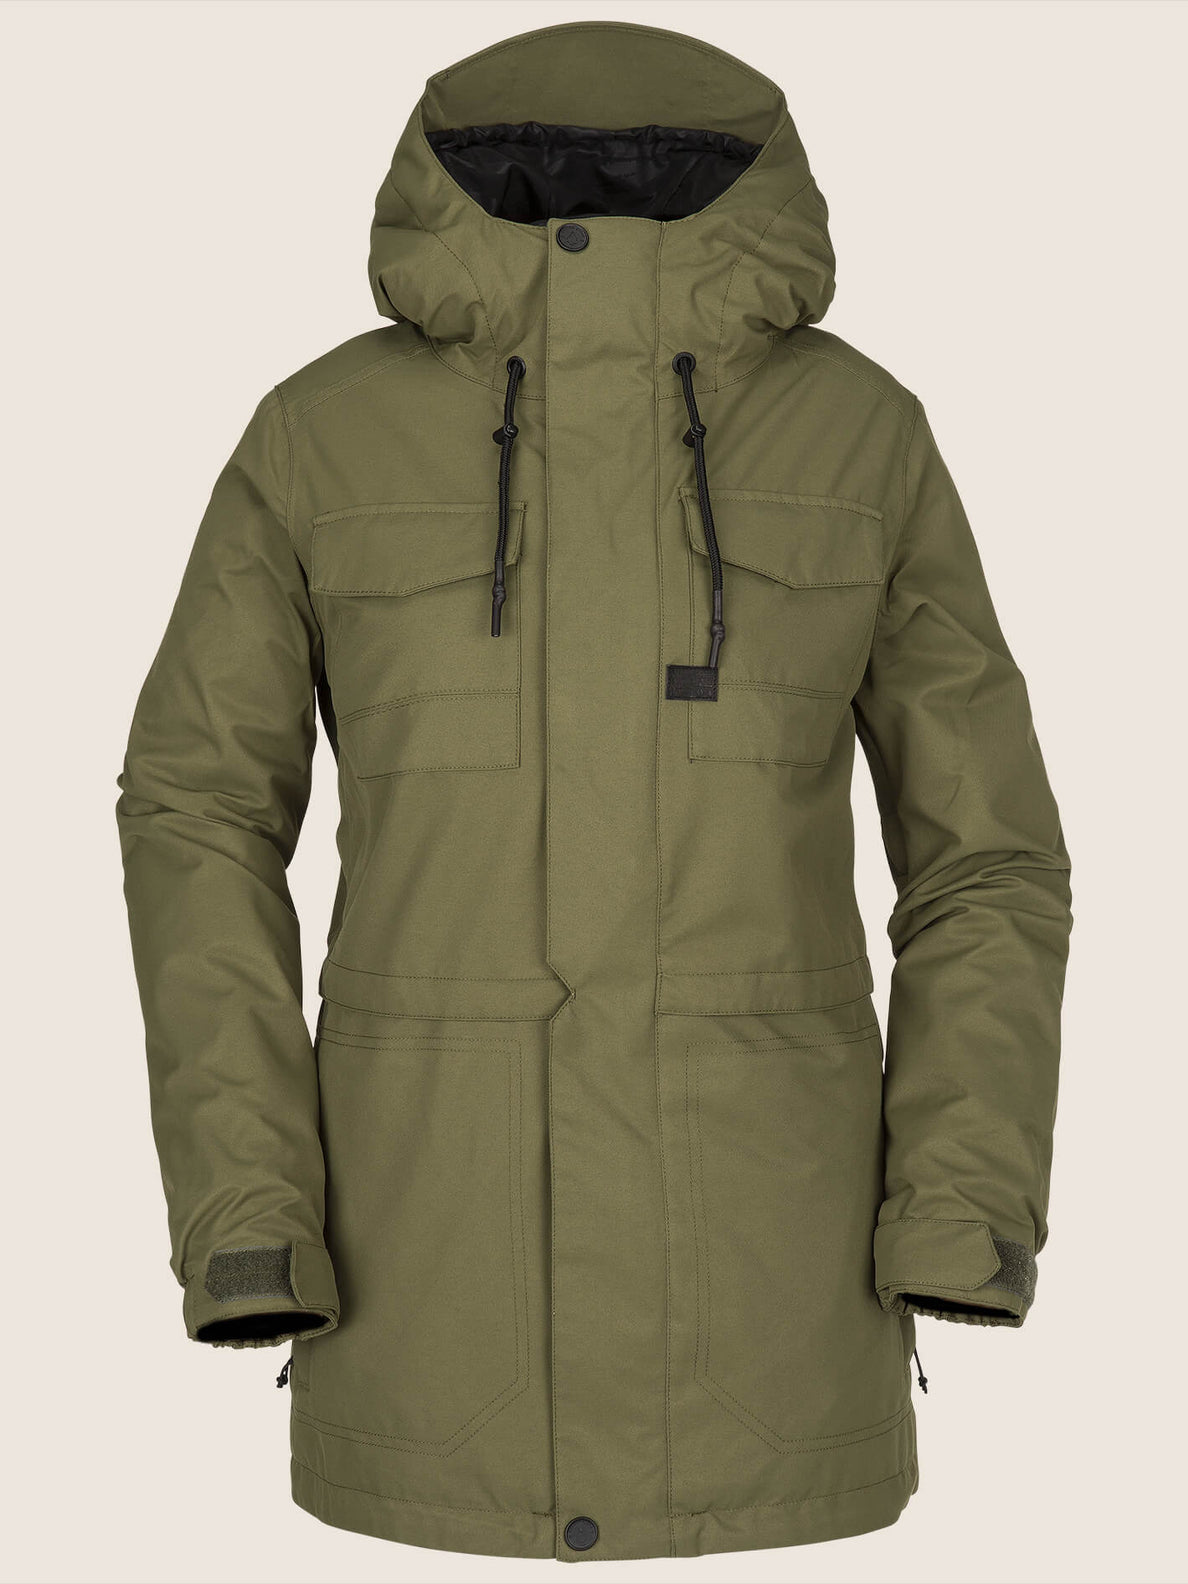 Leeland Jacket In Snow Military, Front View